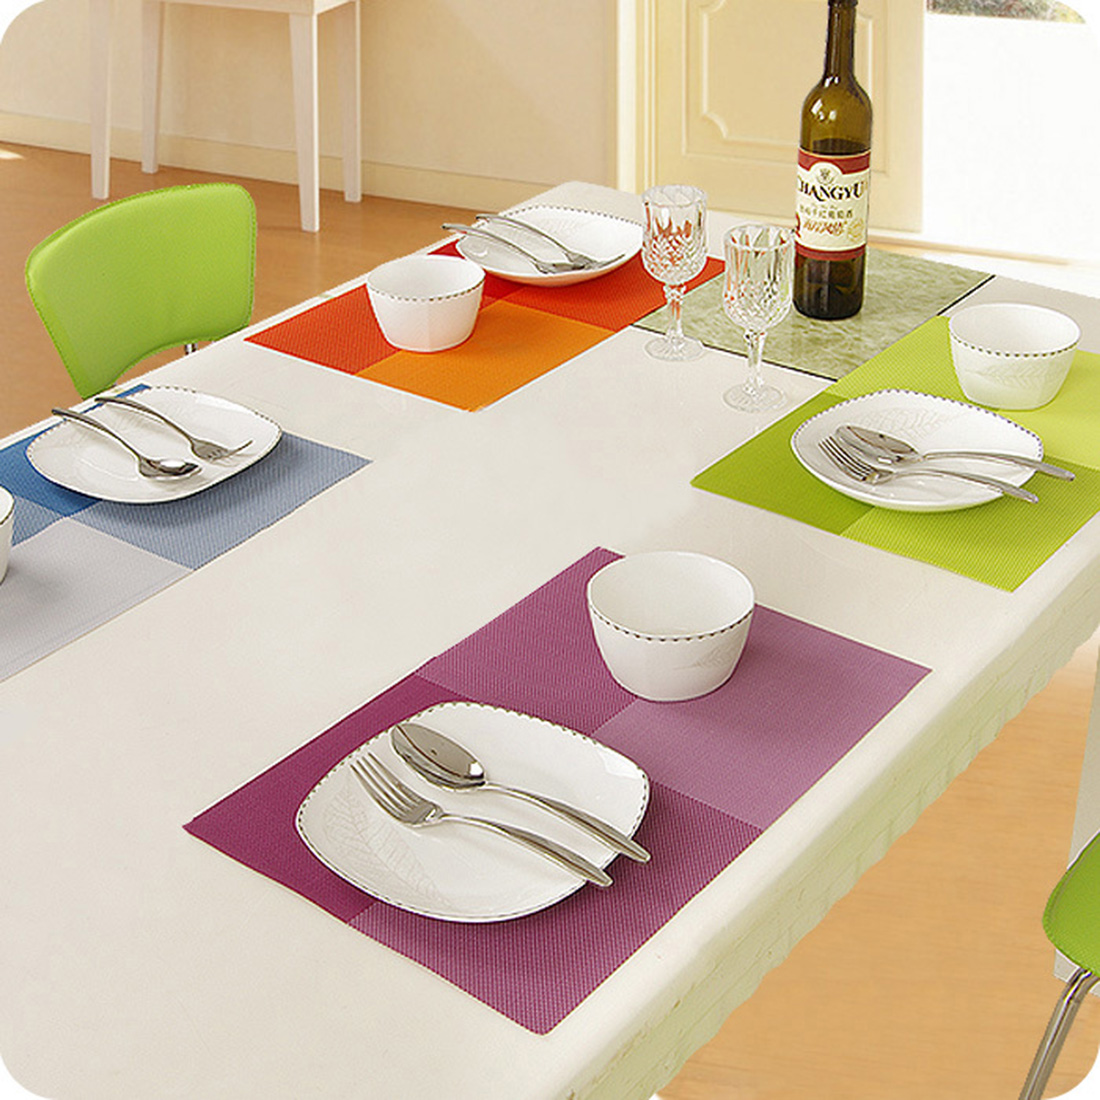 1pcs European Style dining table mat Dinner Placemats waterproof table cloth Kitchen Dining Bar Accessories Tools 8 Colors(China (Mainland))